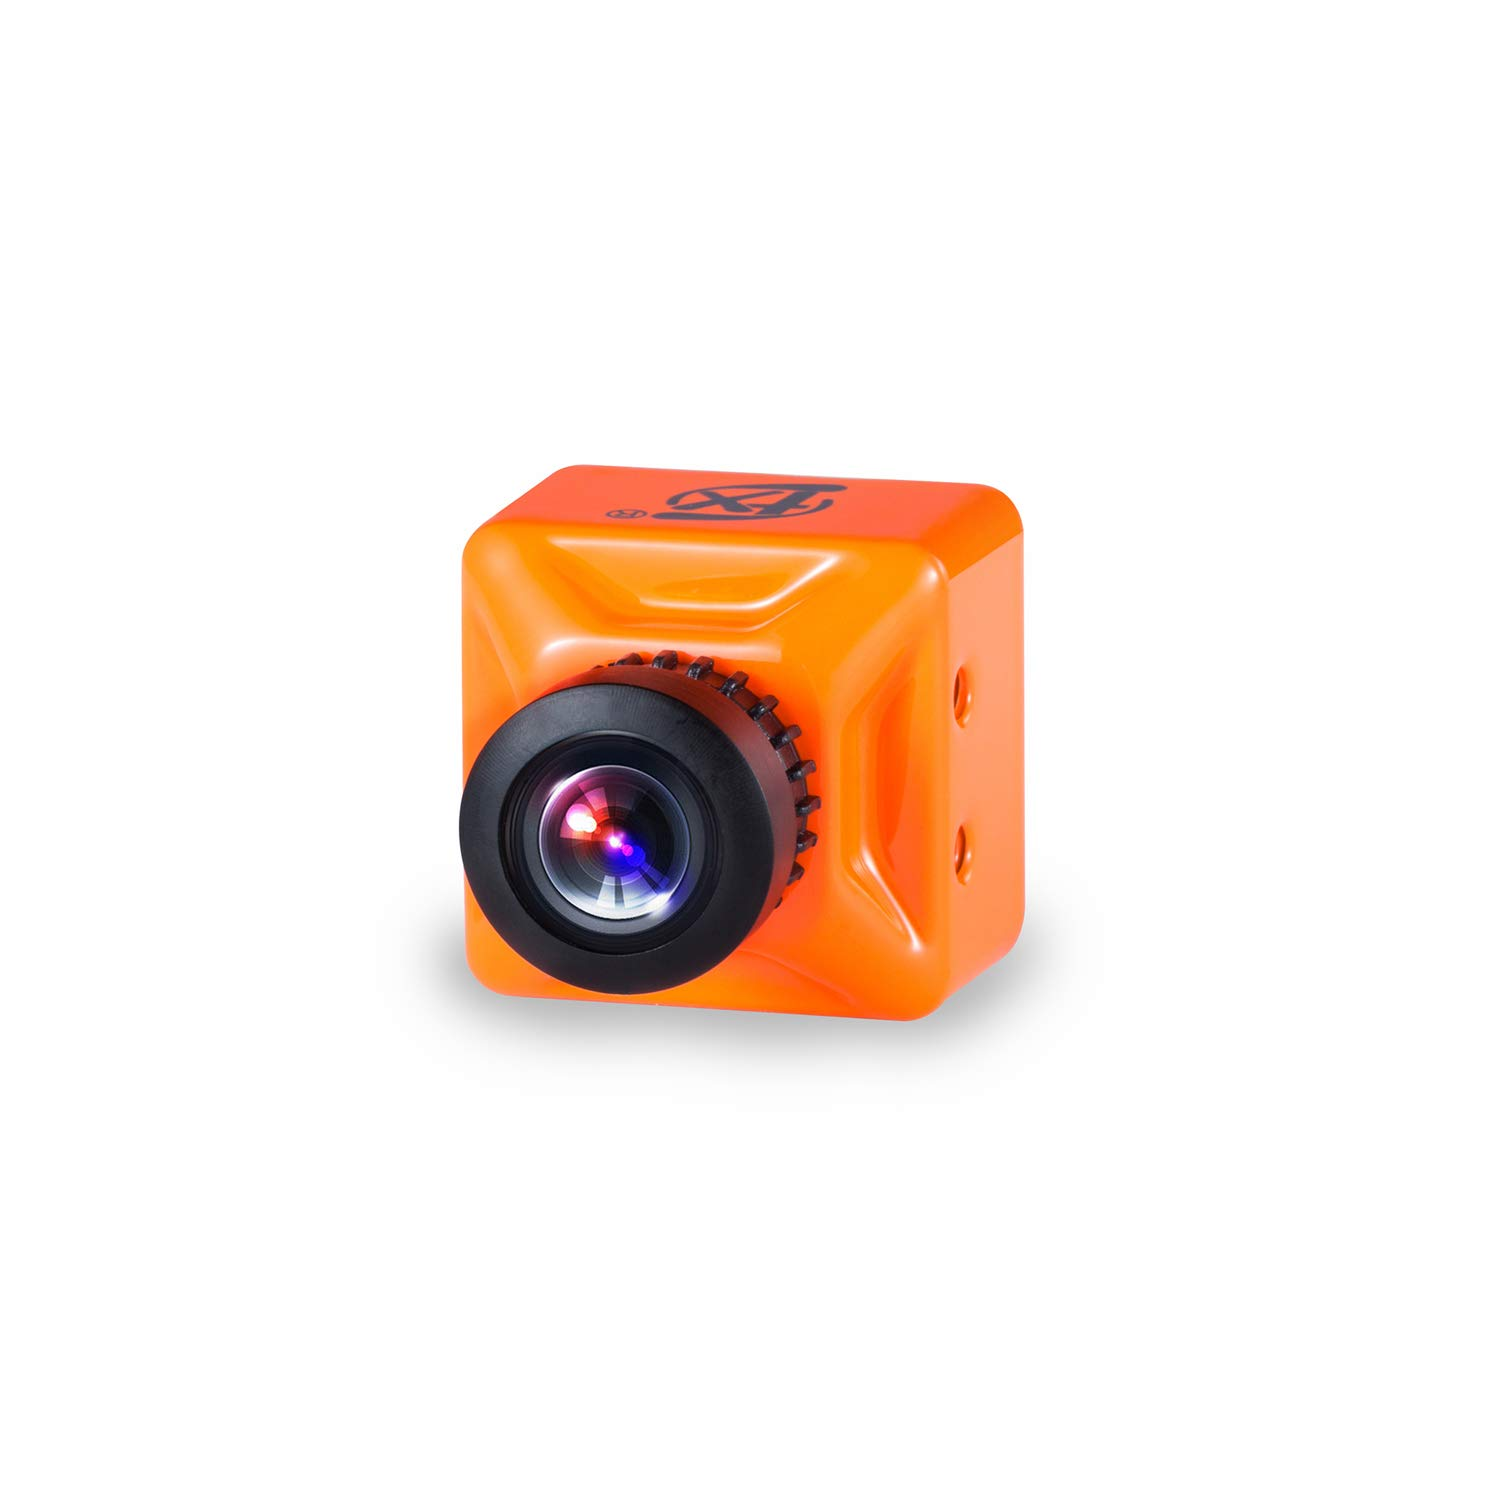 FXT T82 Venus Pro Camera 800TVL Mini Camera with OSD for FPV Racing Drone Quadcopter Orange by TX